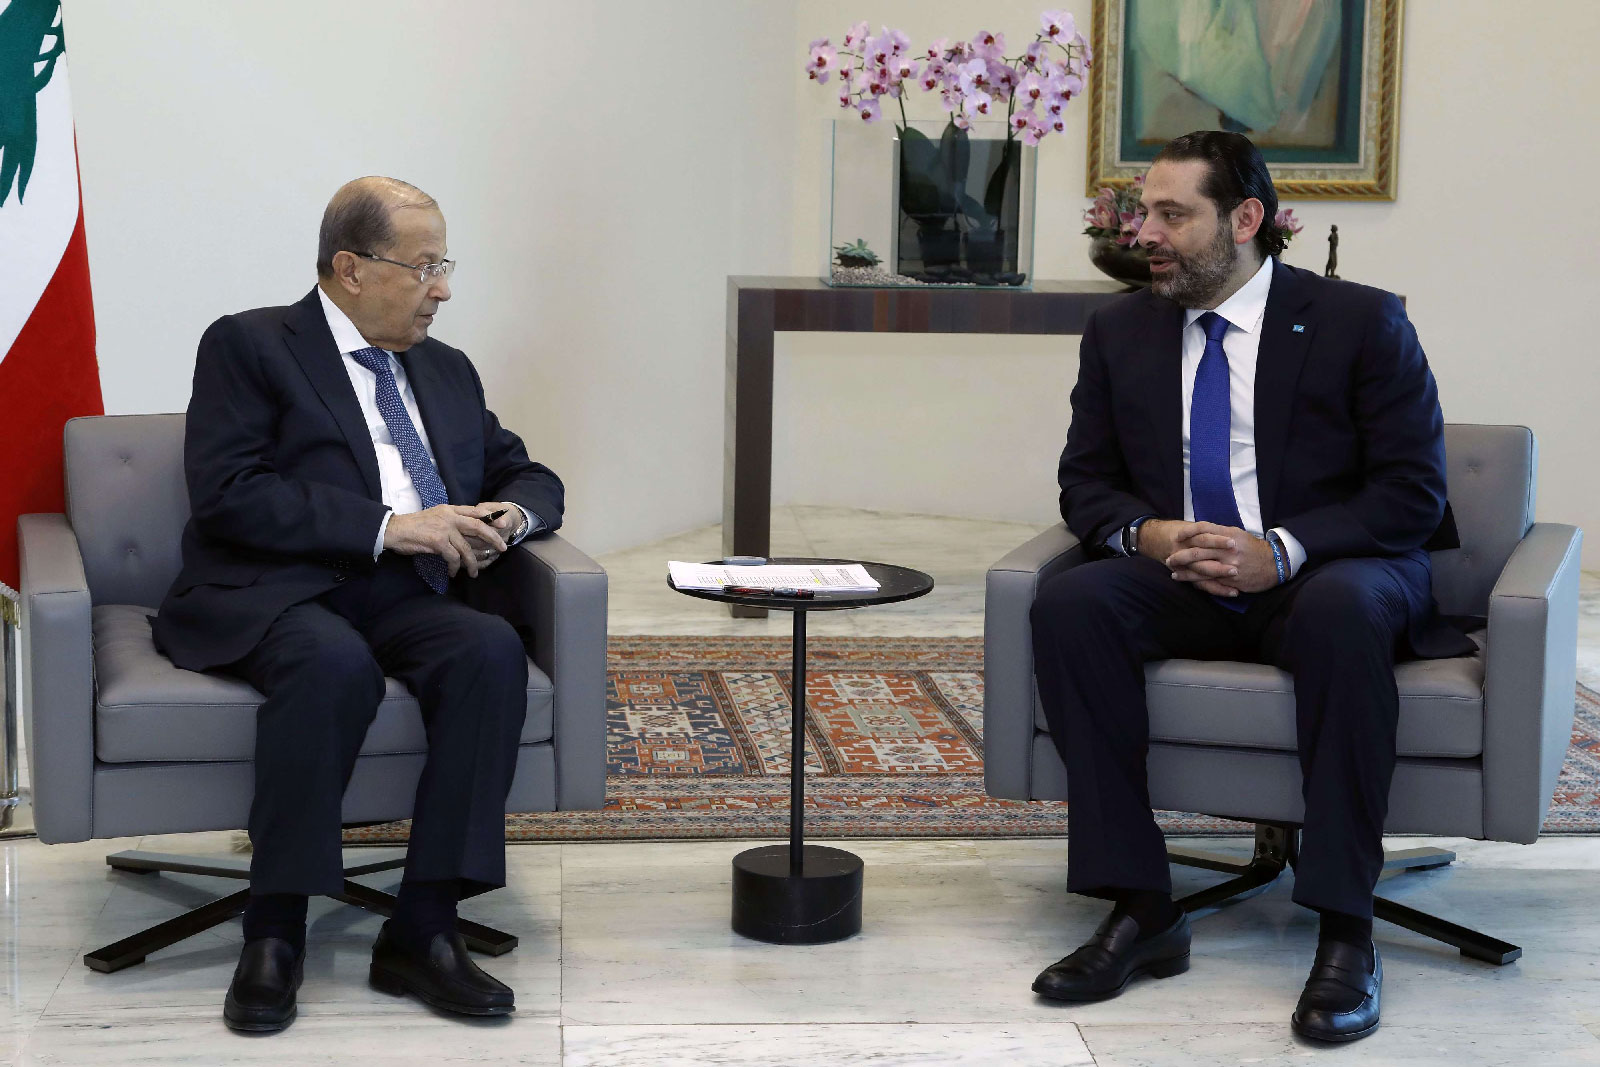 Lebanese President Michel Aoun, left, meets with Prime Minister Saad Hariri, at the Presidential Palace in Baabda.